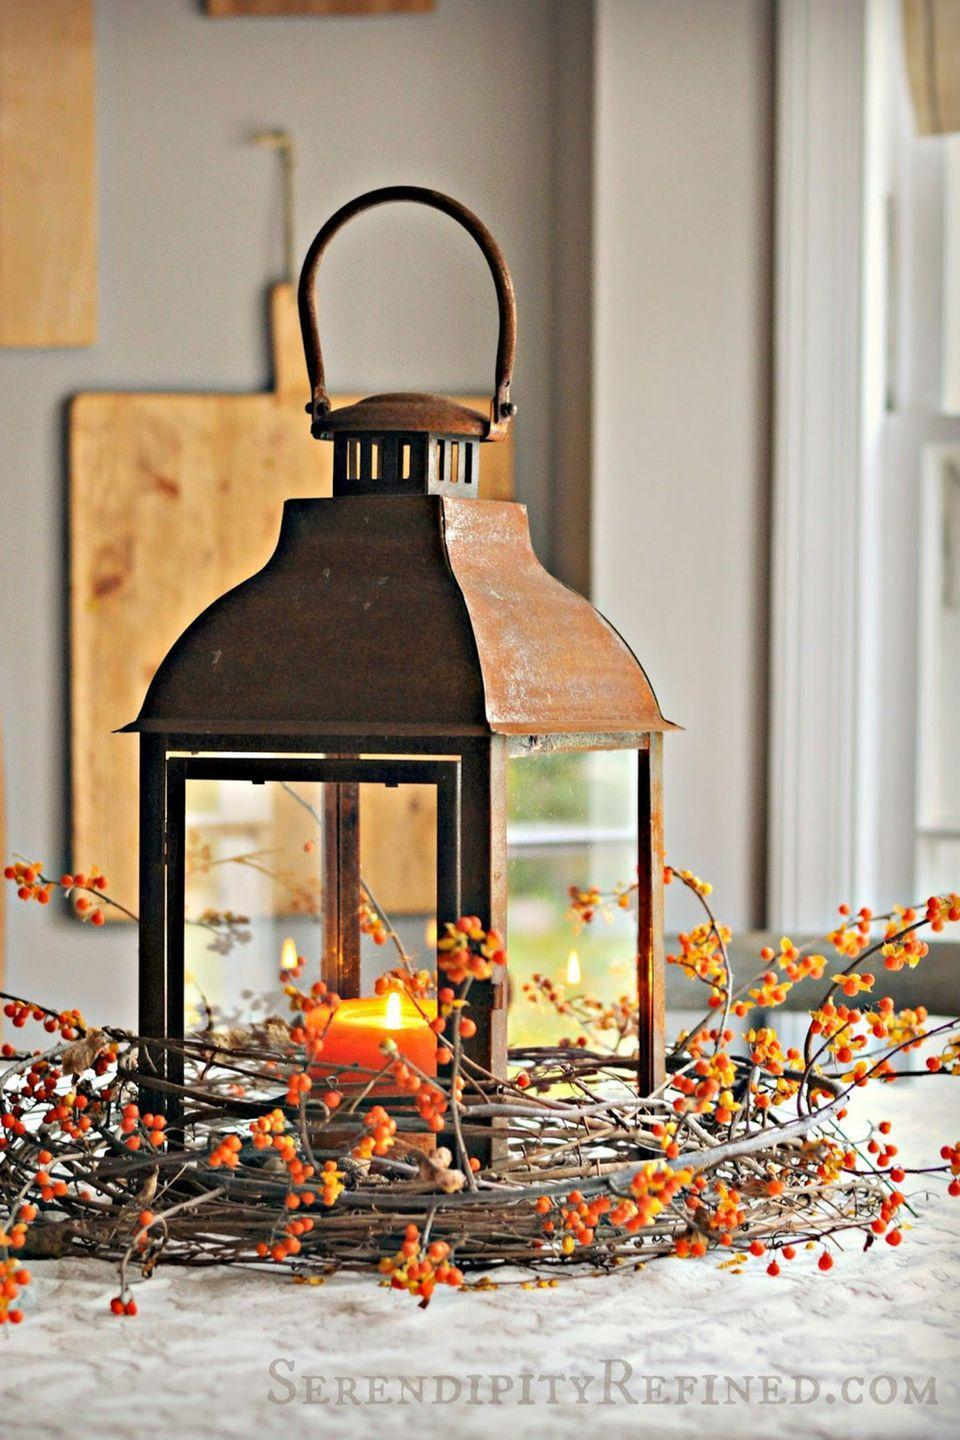 """<p>Light up your table in style with a vintage lantern surrounded by fall branches. </p><p><strong>Get the tutorial at <a href=""""http://www.serendipityrefined.com/2014/10/rusty-lantern-and-bittersweet-simple.html"""" rel=""""nofollow noopener"""" target=""""_blank"""" data-ylk=""""slk:Serendipity Refined"""" class=""""link rapid-noclick-resp"""">Serendipity Refined</a>.</strong></p><p><strong><a class=""""link rapid-noclick-resp"""" href=""""https://go.redirectingat.com?id=74968X1596630&url=https%3A%2F%2Fwww.wayfair.com%2Fdecor-pillows%2Fpdp%2Fthree-posts-wooden-lantern-thps8743.html&sref=https%3A%2F%2Fwww.countryliving.com%2Fentertaining%2Fg2130%2Fthanksgiving-centerpieces%2F"""" rel=""""nofollow noopener"""" target=""""_blank"""" data-ylk=""""slk:SHOP LANTERNS"""">SHOP LANTERNS</a></strong></p>"""